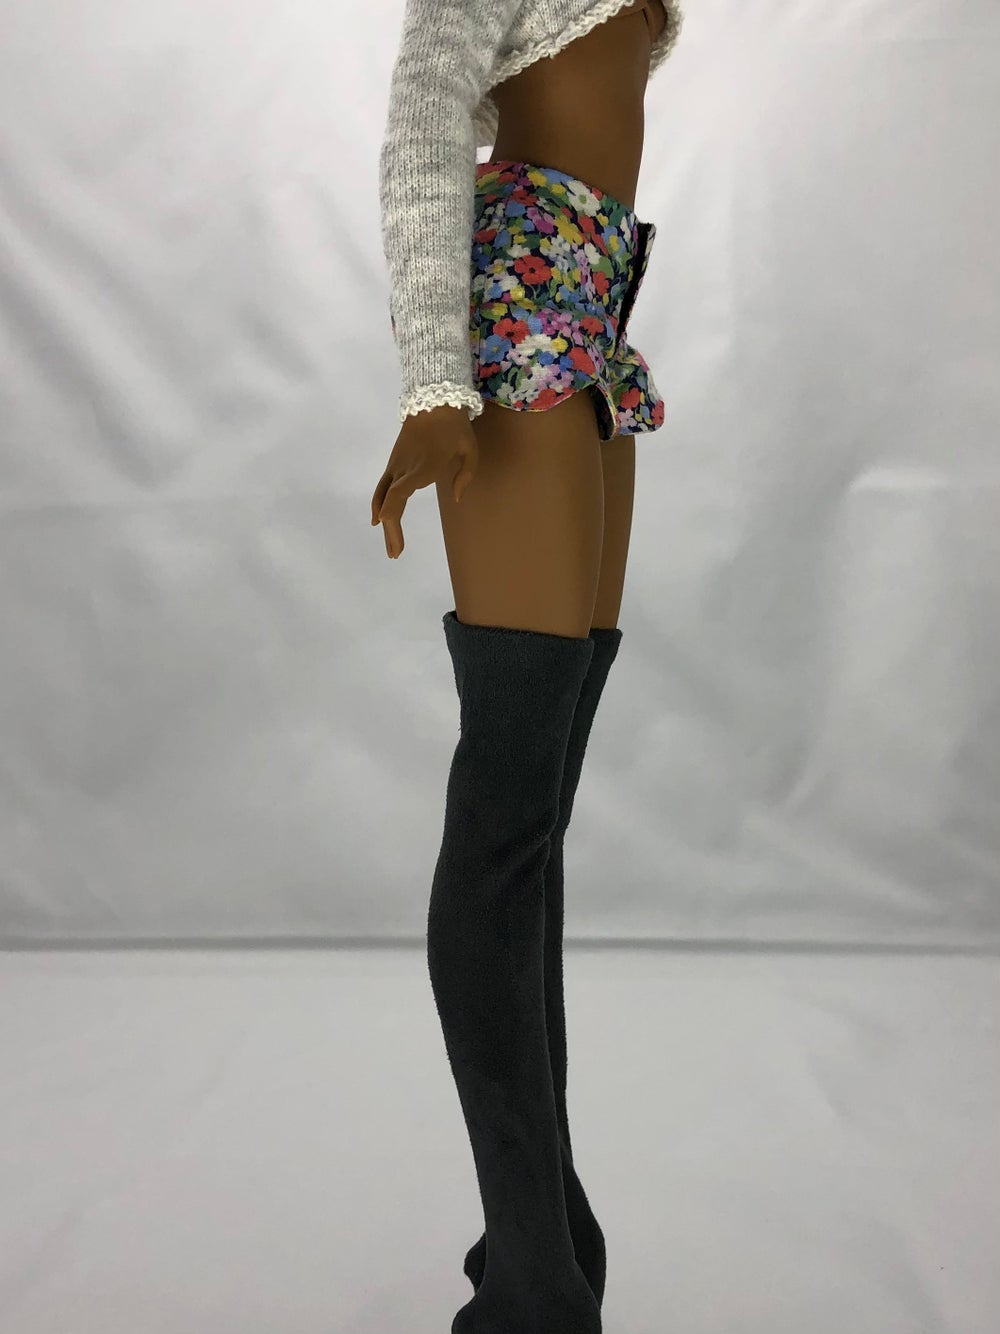 Scalloped Wildflower Shorts: Pidgin Doll